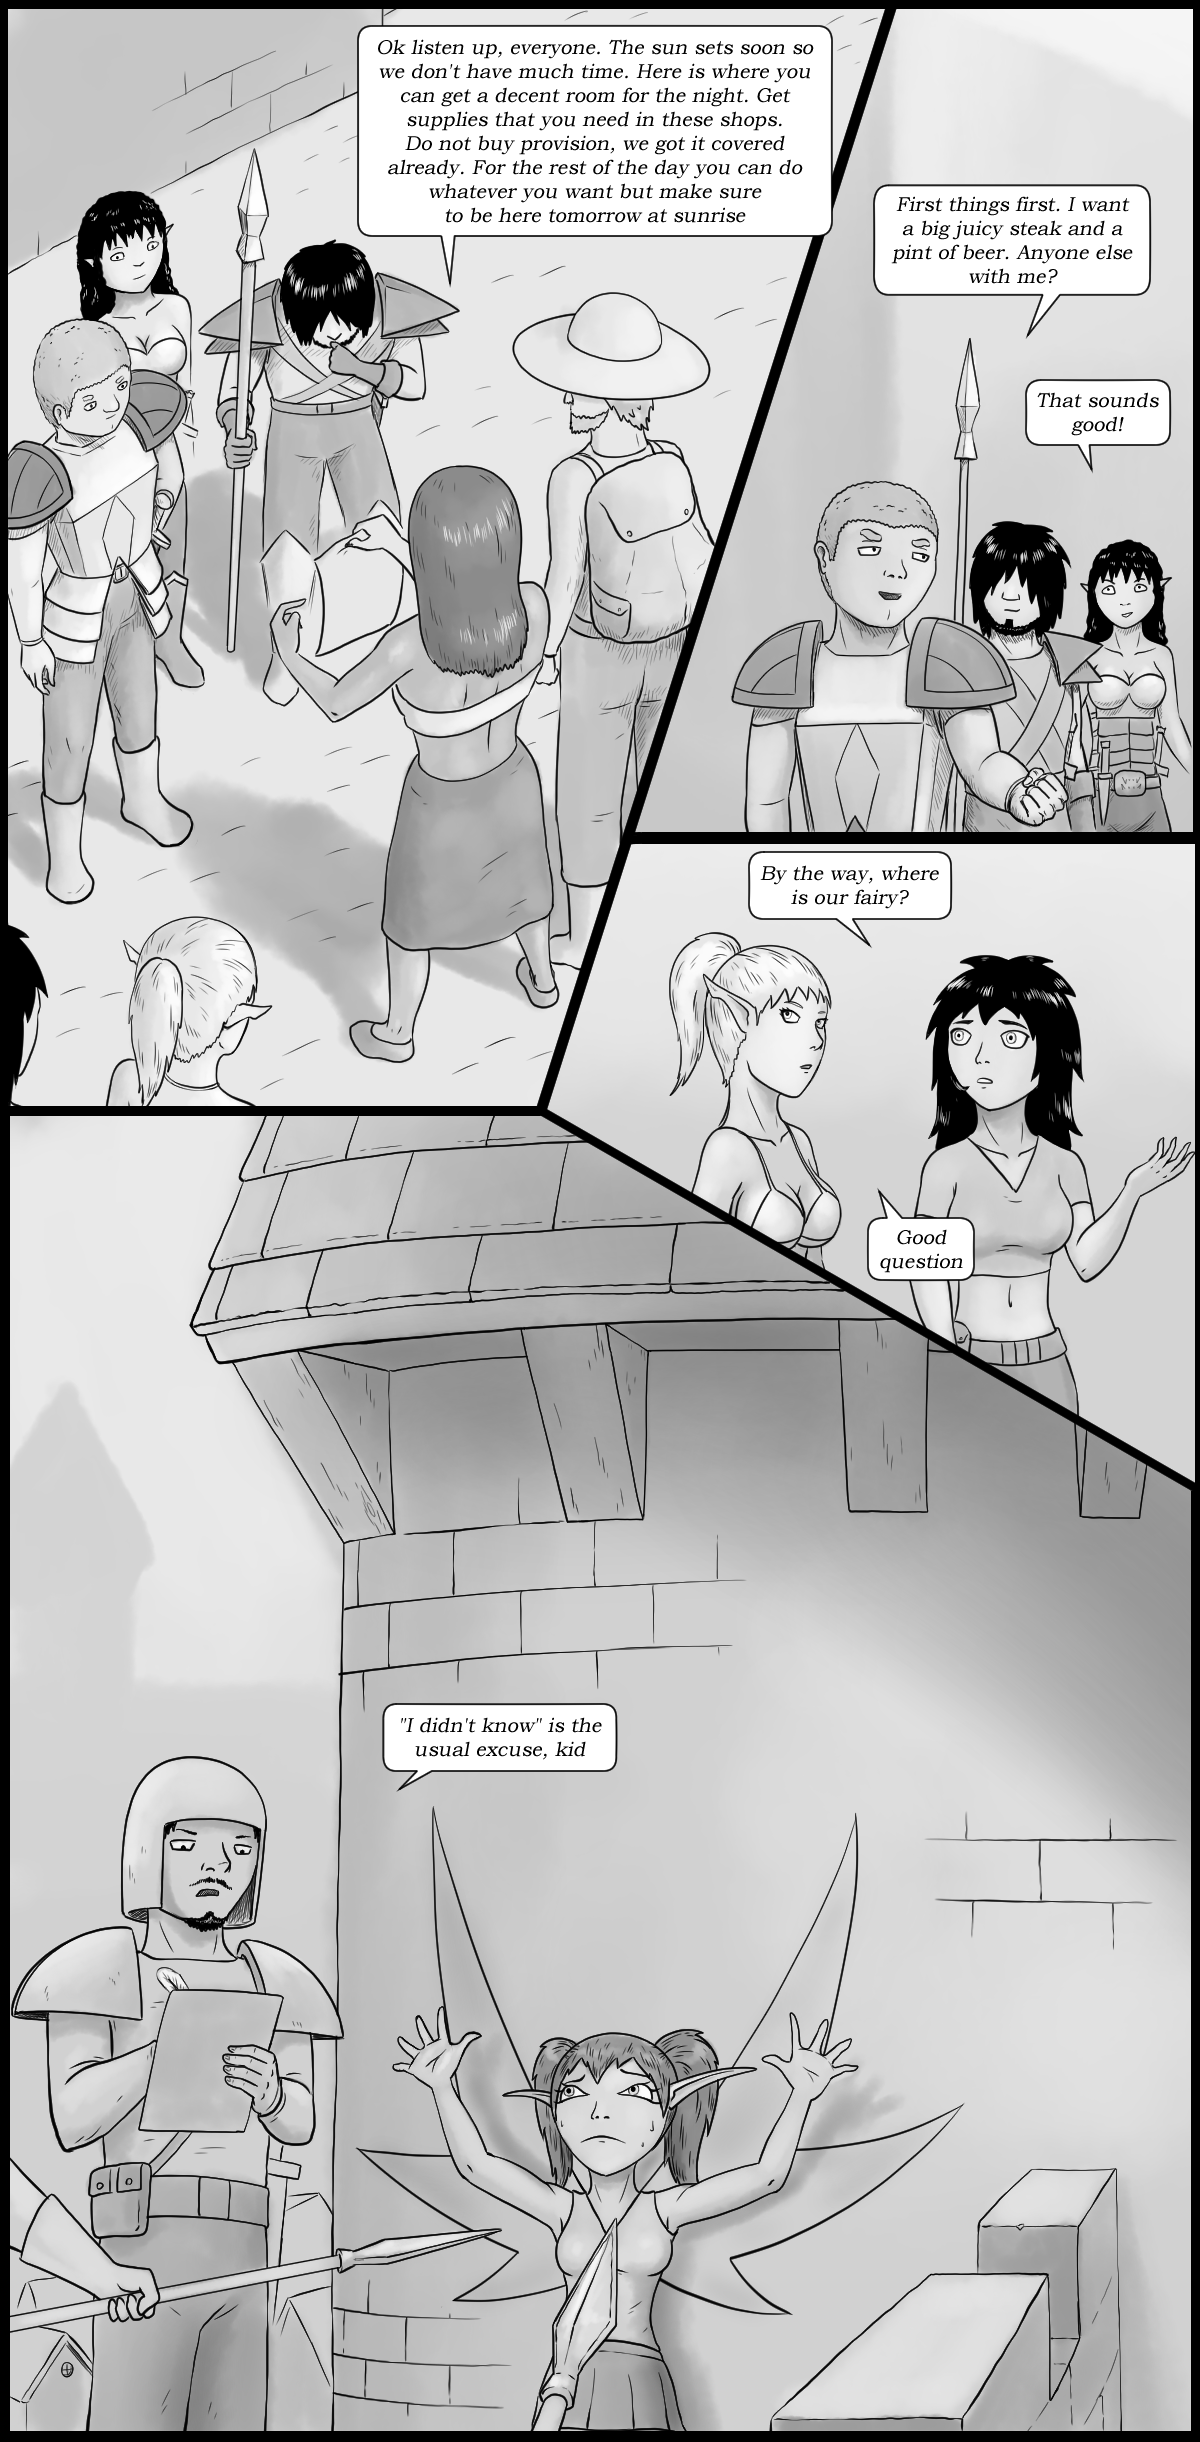 Page 53 - First things first!